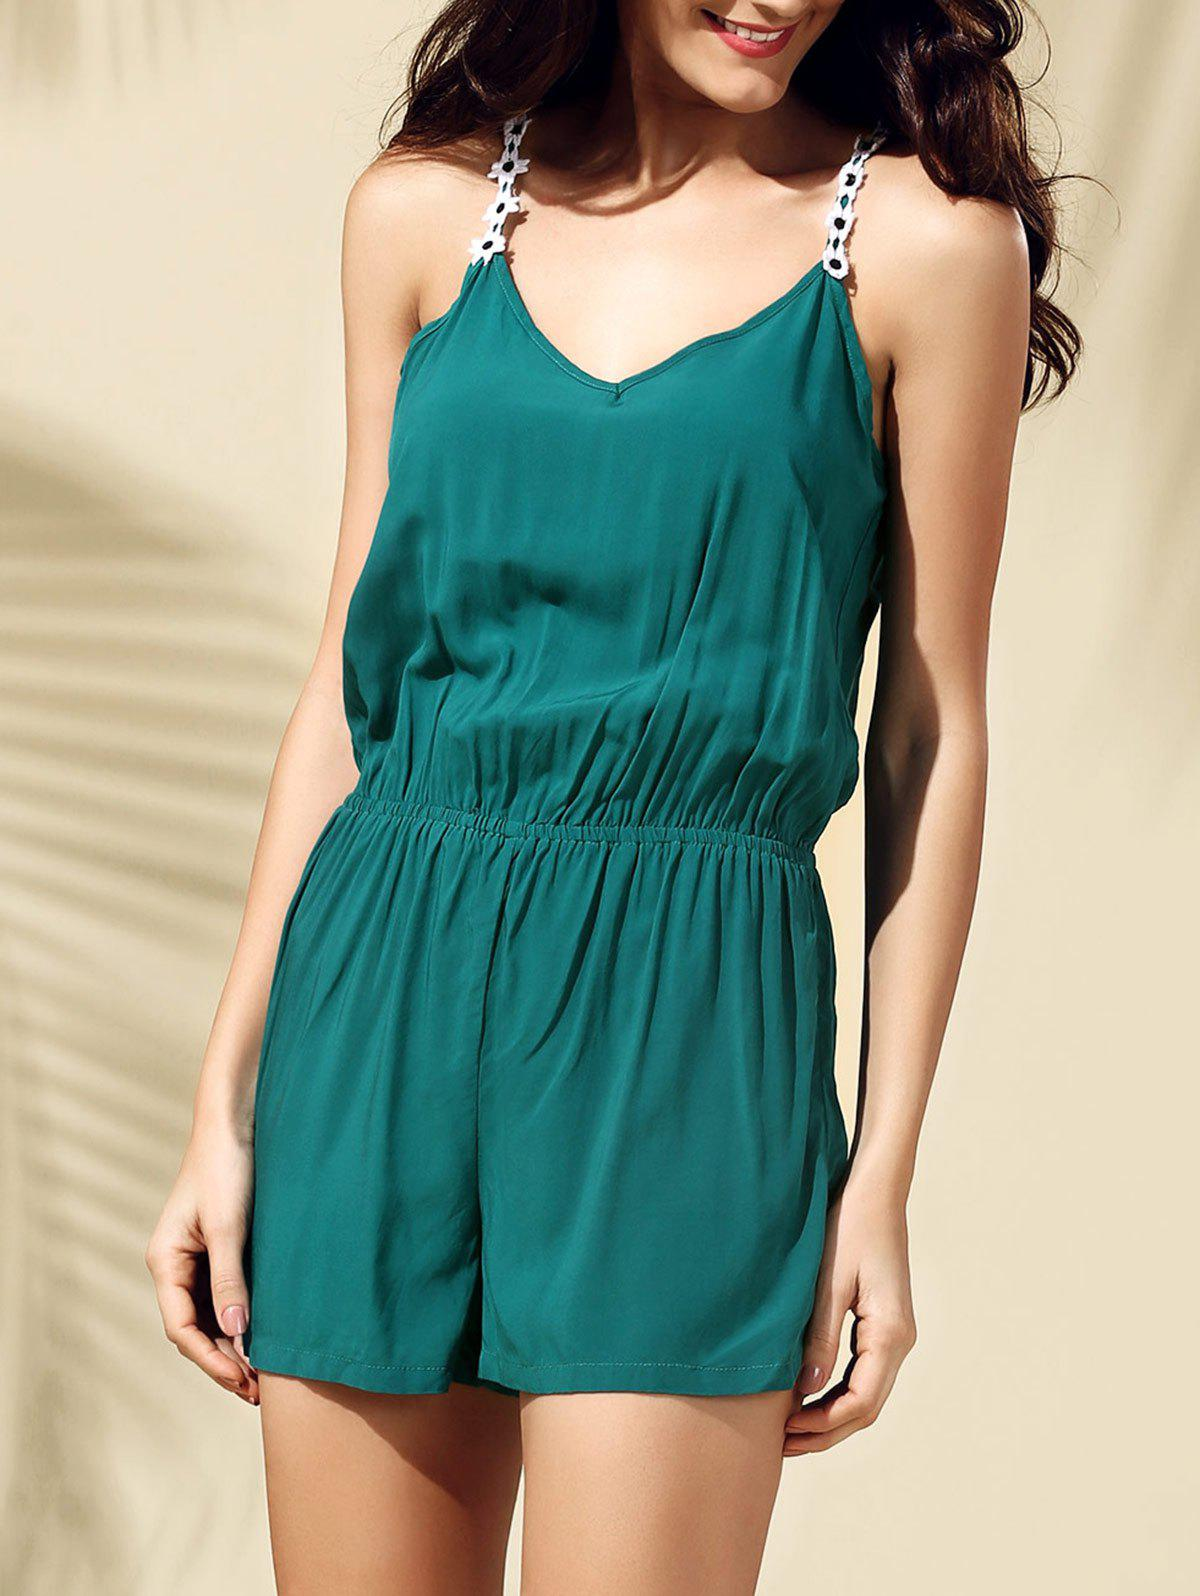 Casual Backless Laciness Women's Romper